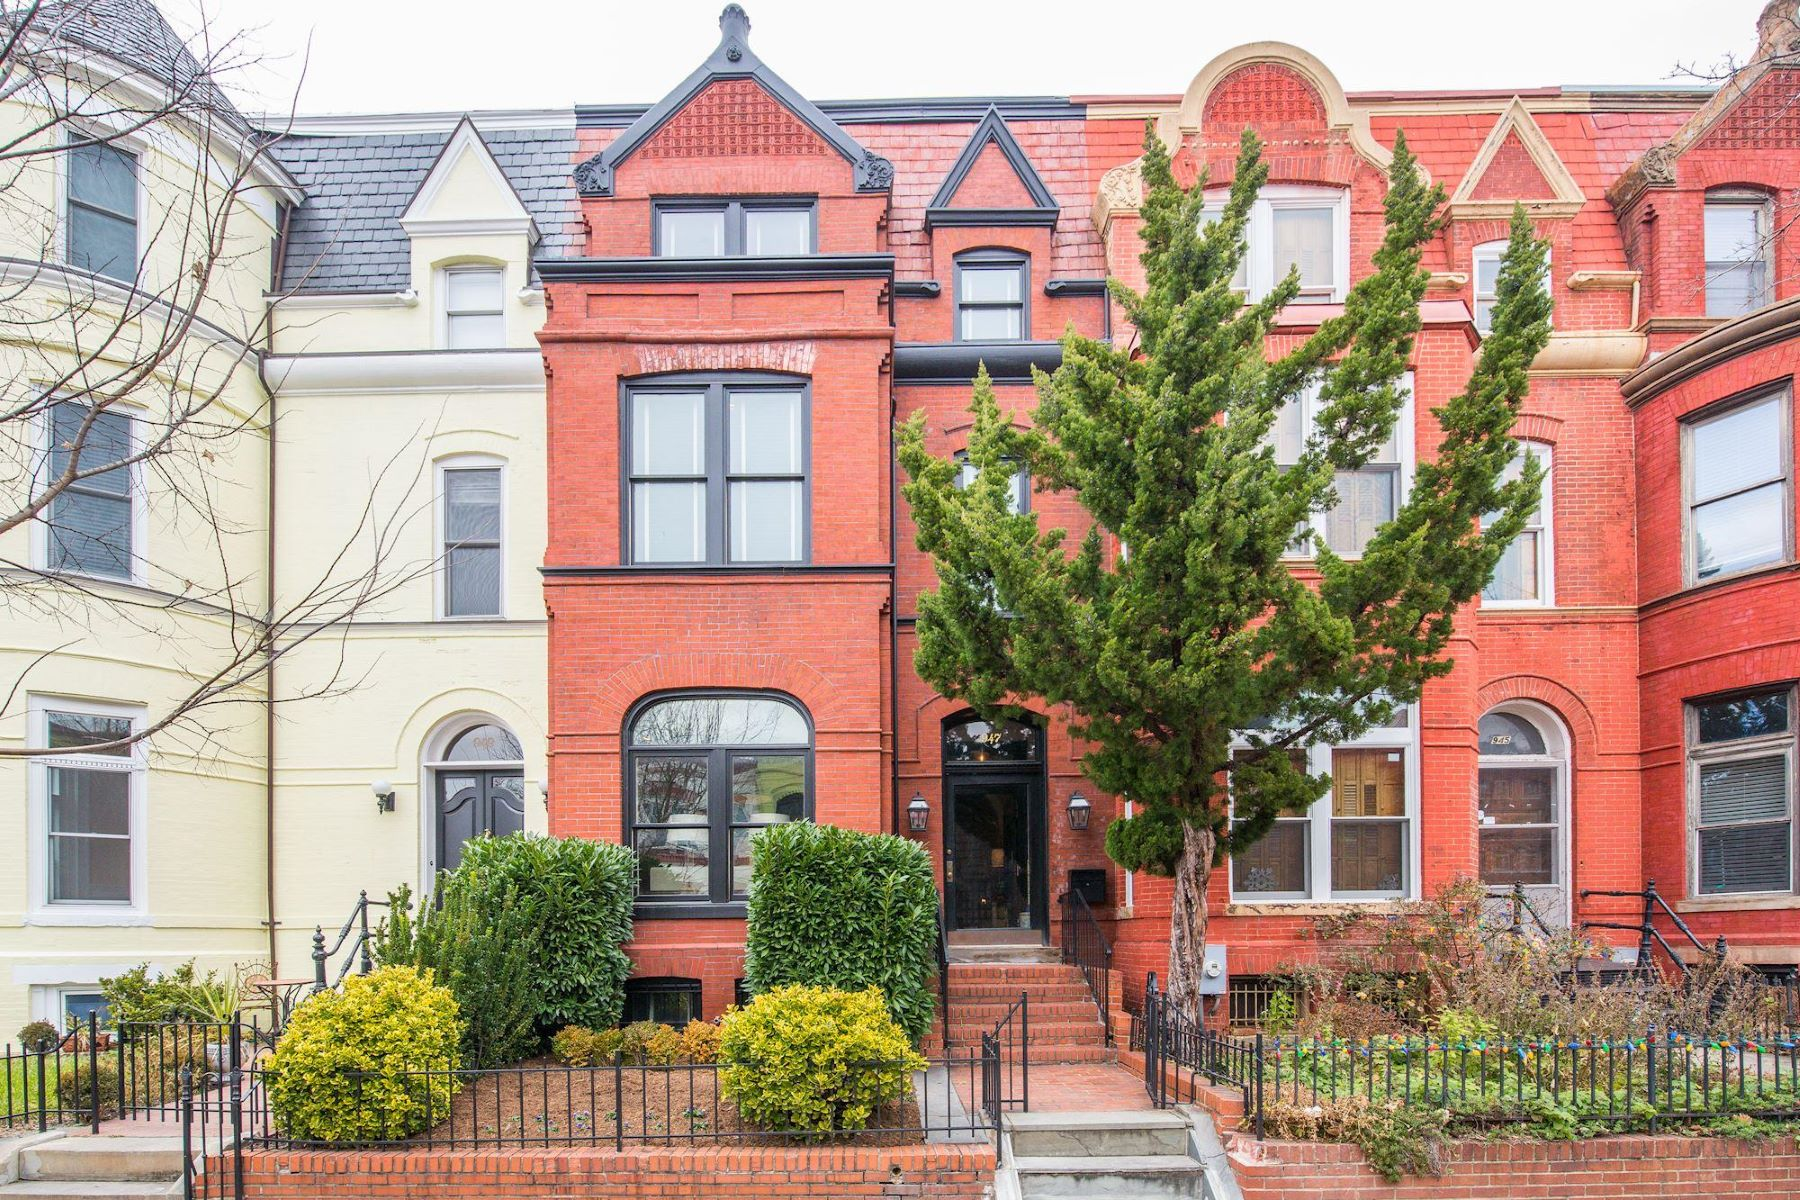 Townhouse for Sale at 947 S St NW 947 S St NW Washington, District Of Columbia 20001 United States